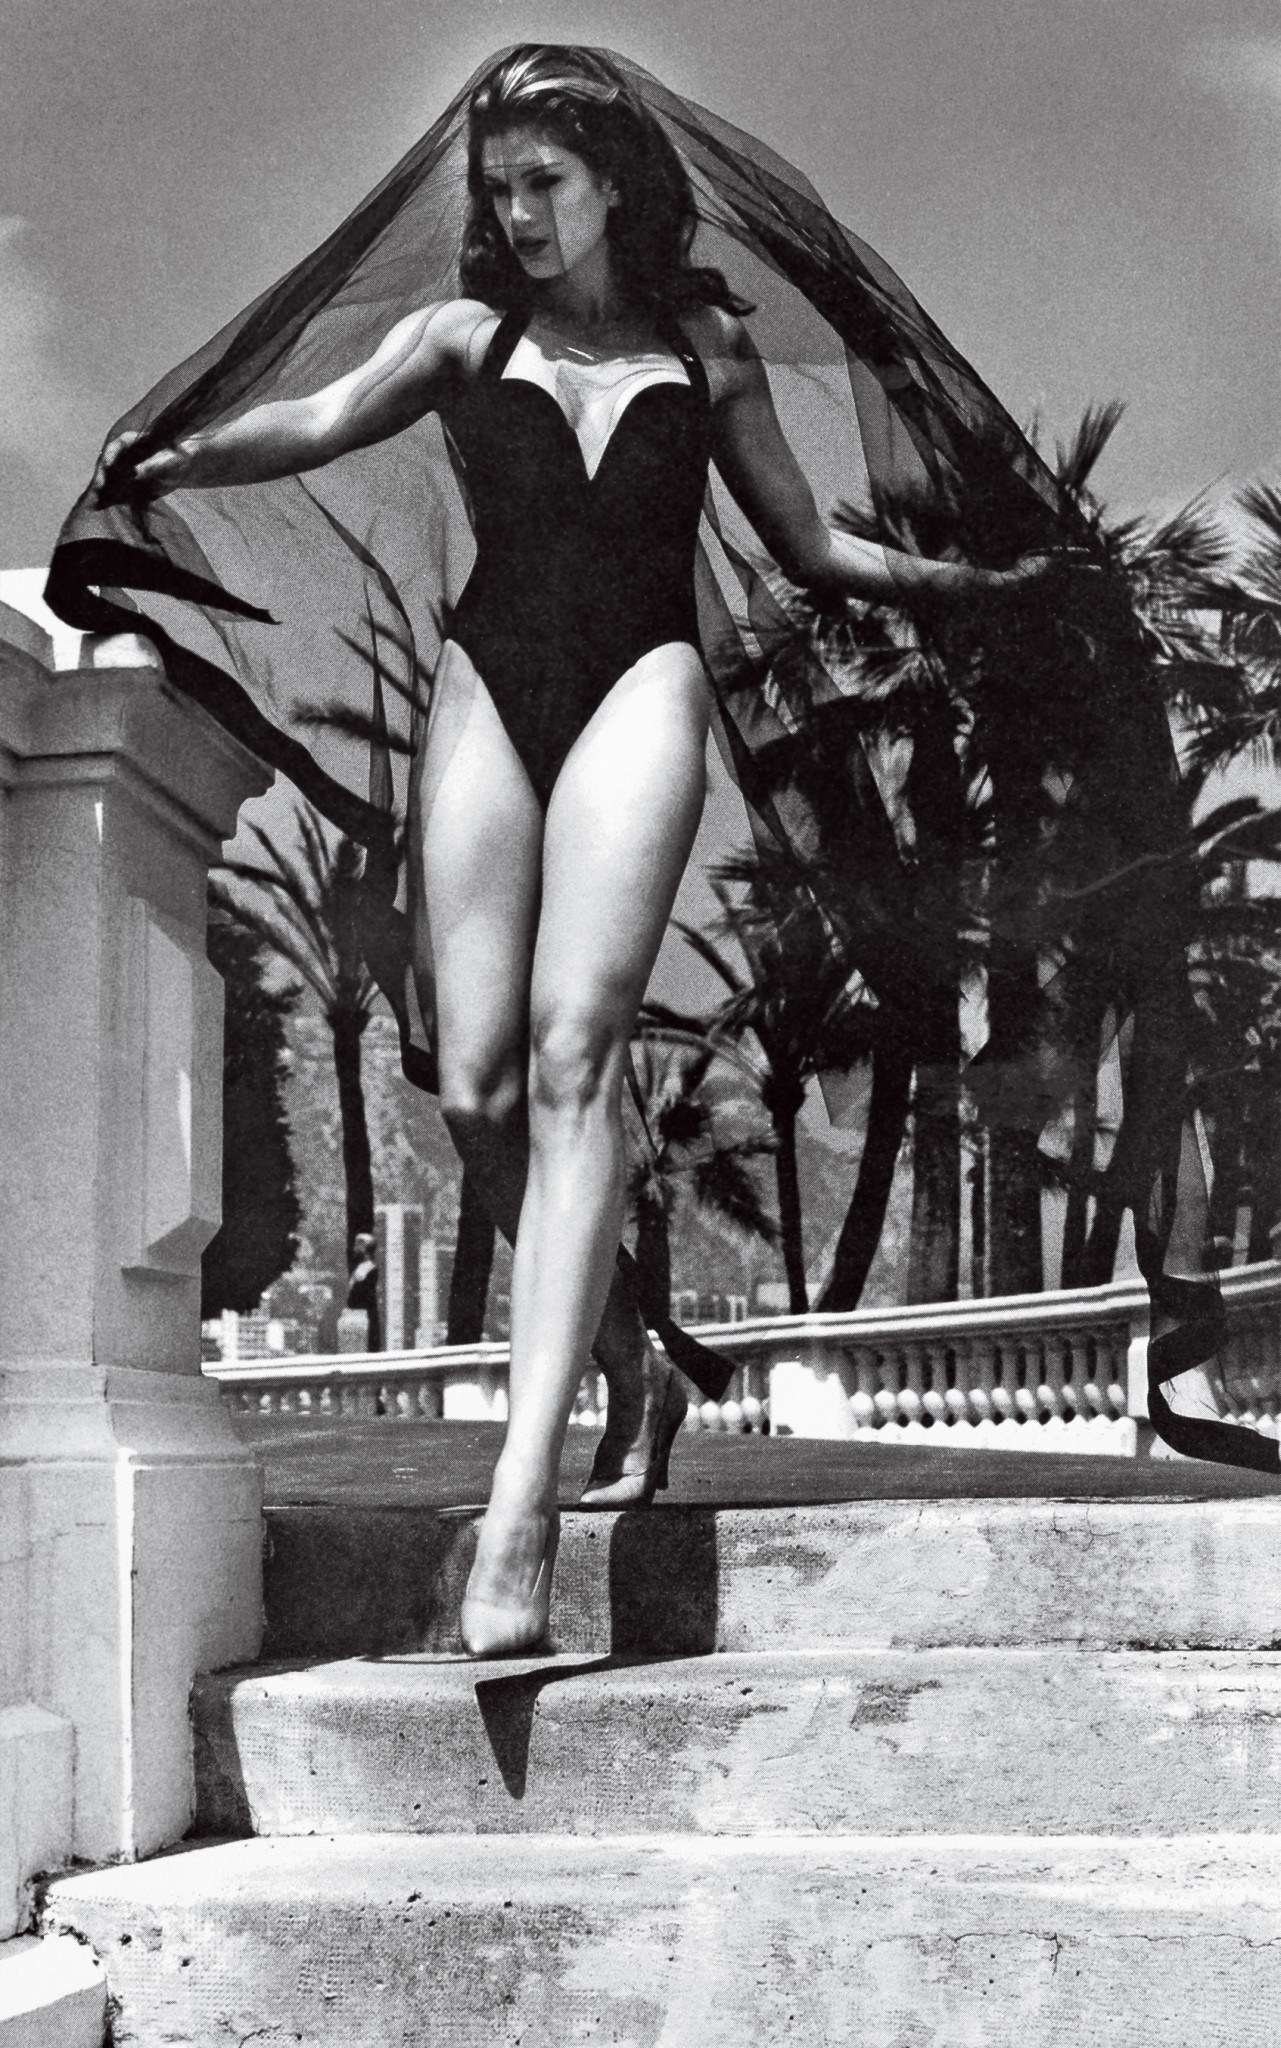 Cindy Crawford, who married Richard Gere, in a 1991 Helmut Newton portrait